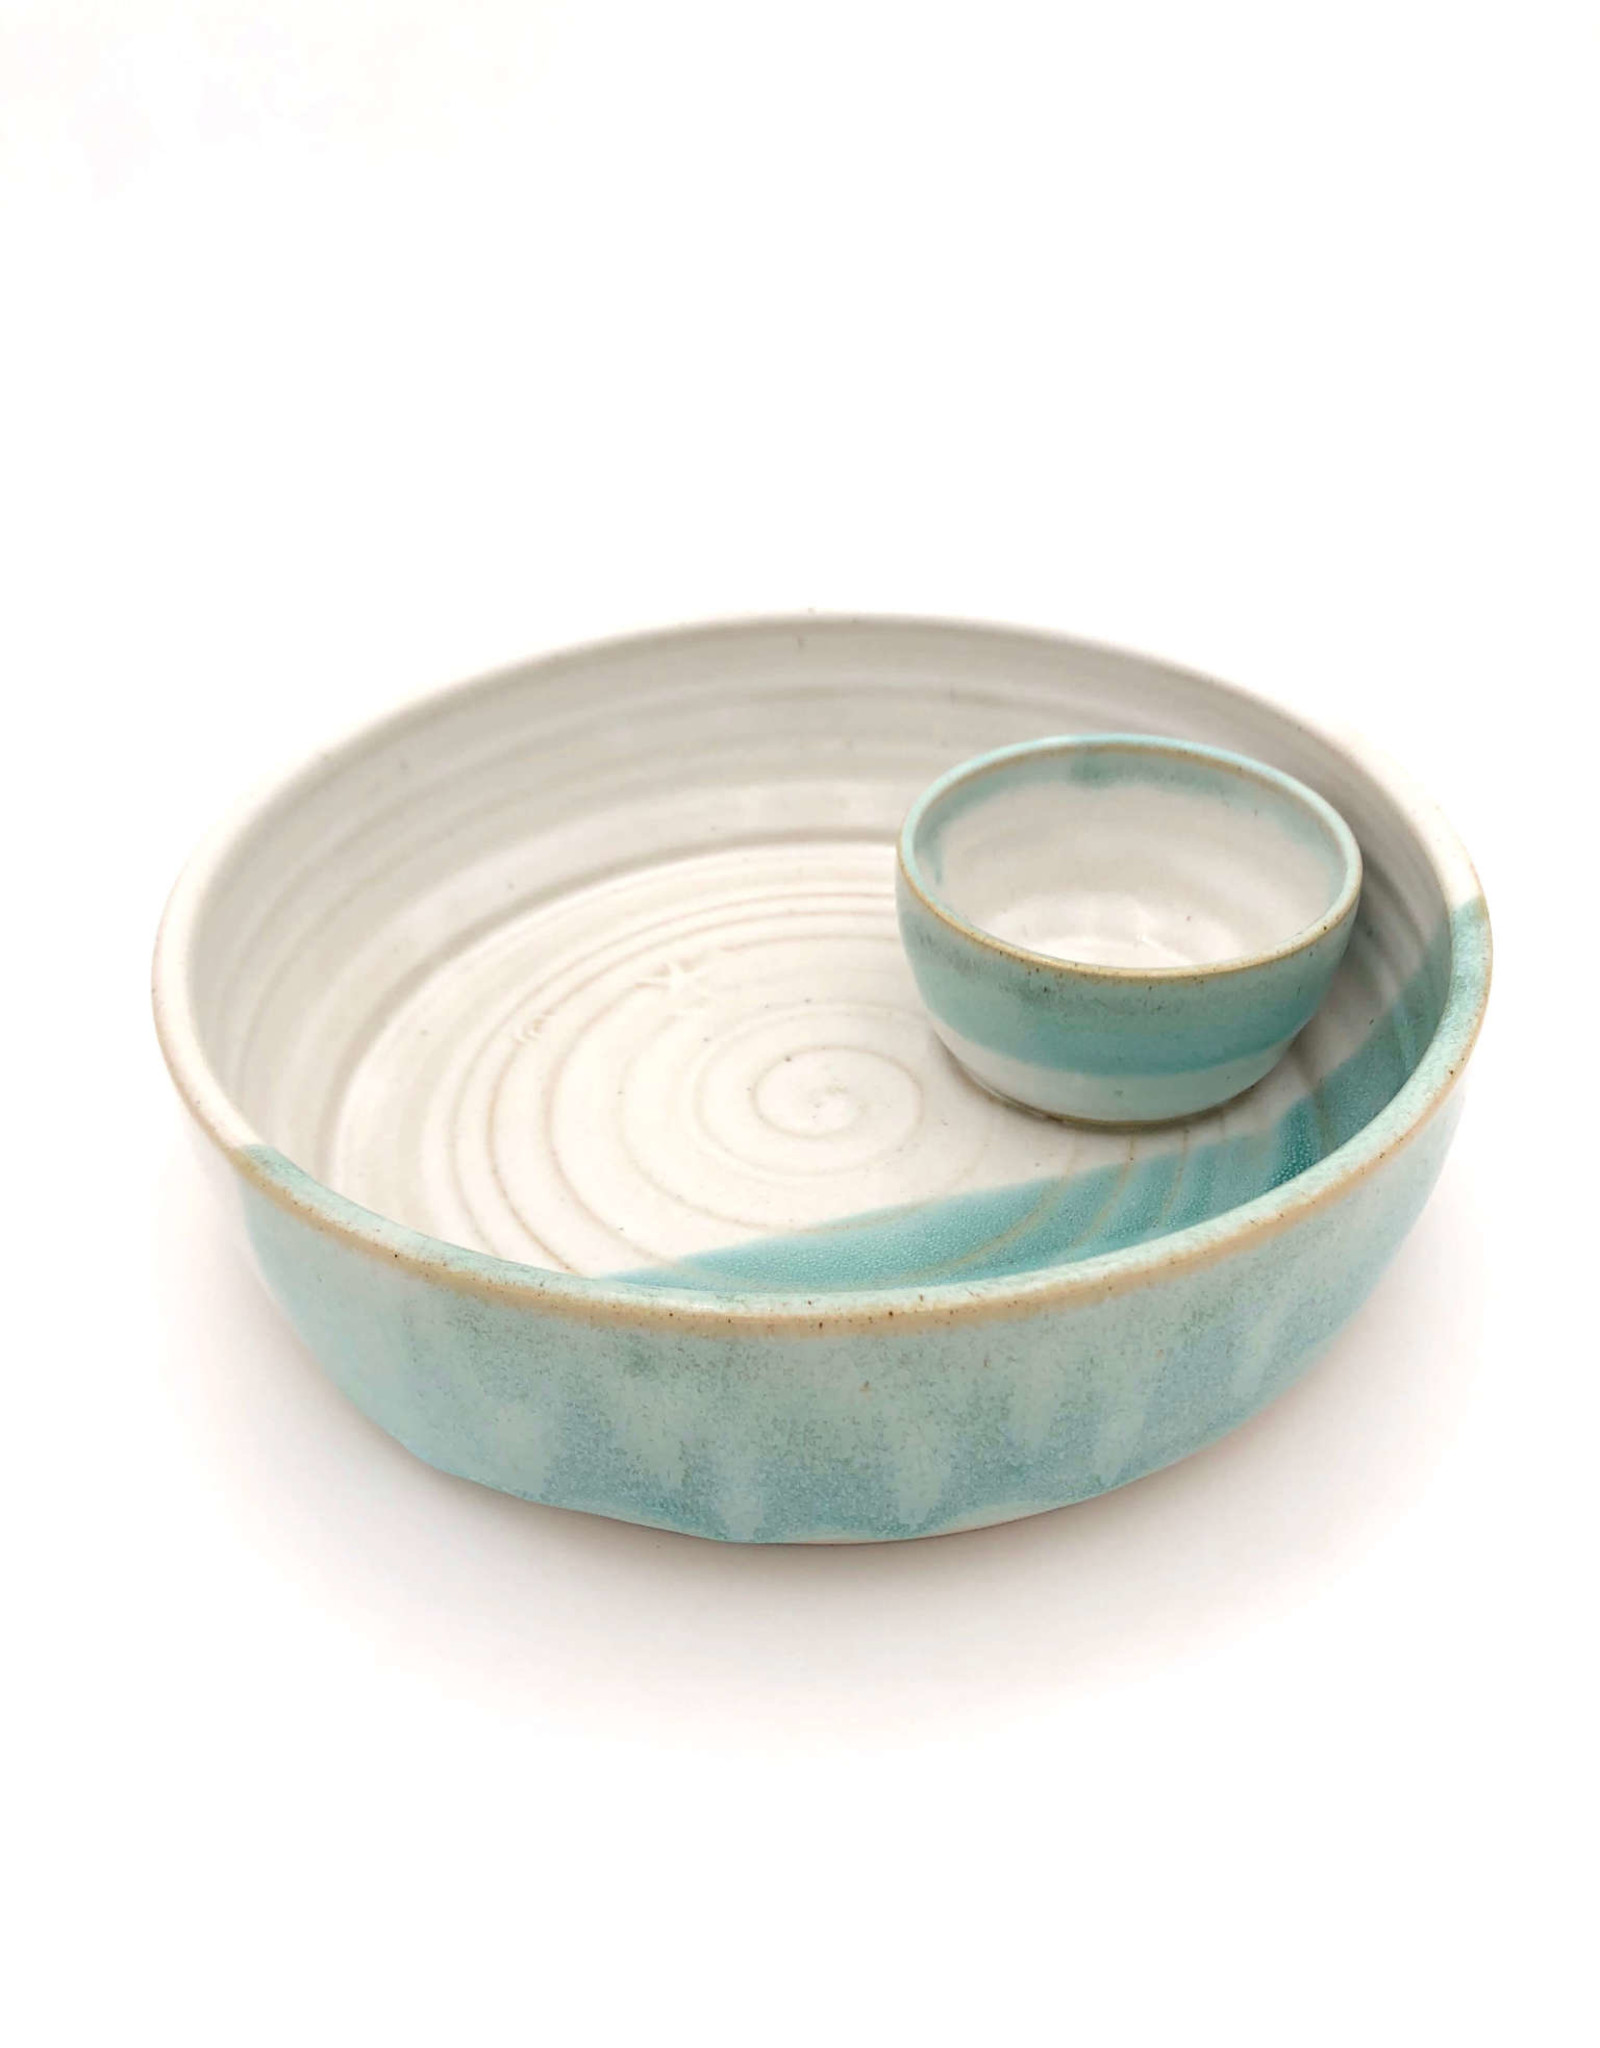 Mosquito Mud Pottery Large Stoneware Chip and Dip Bowl- Aqua